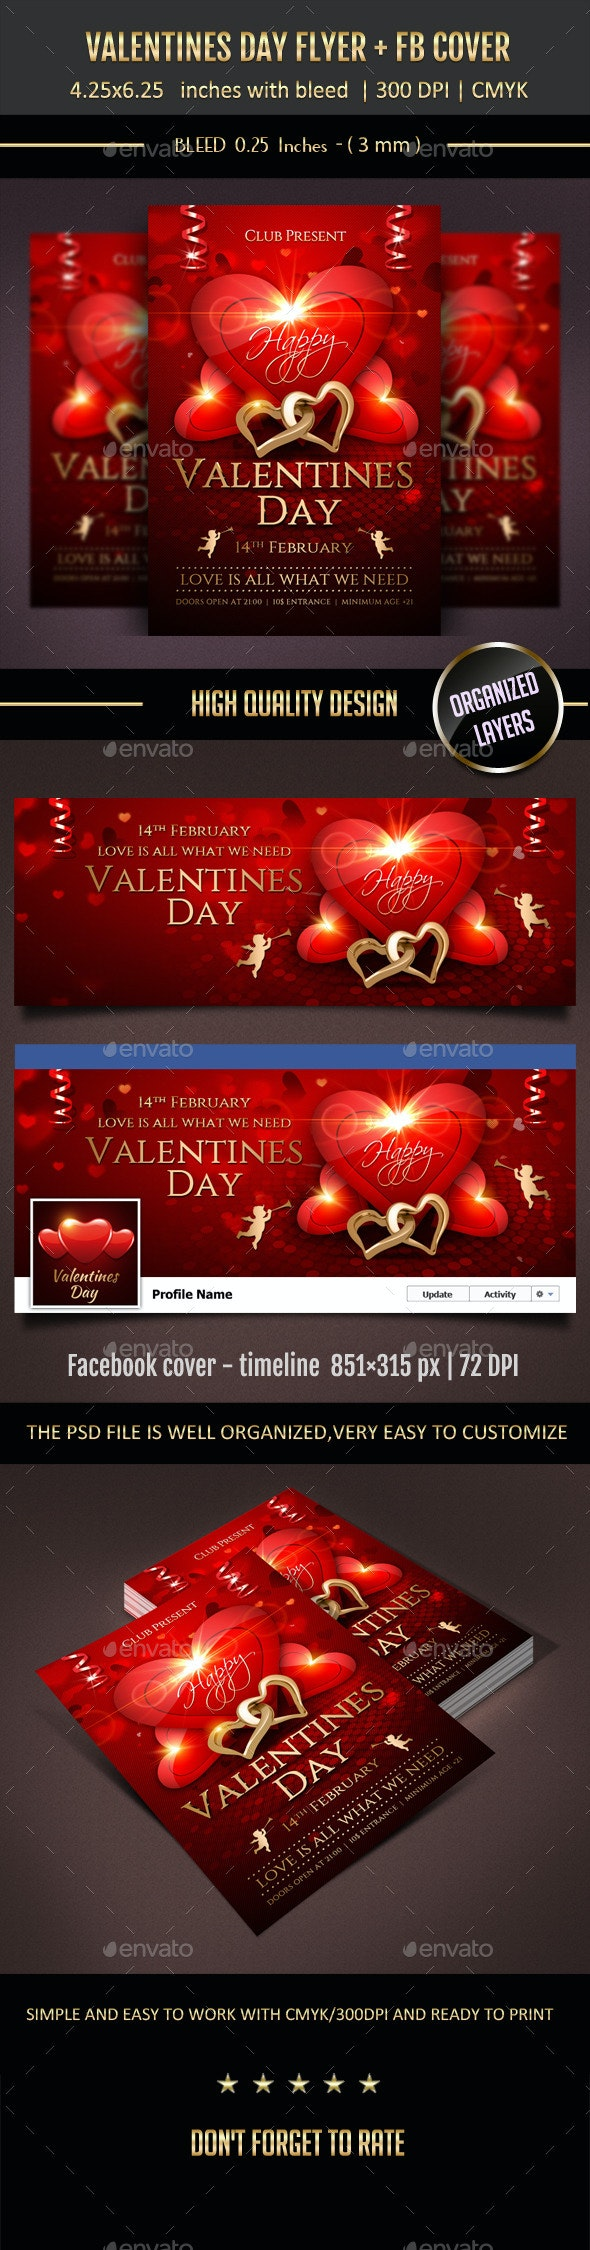 Valentines Day Flyer + Facebook Cover! - Events Flyers